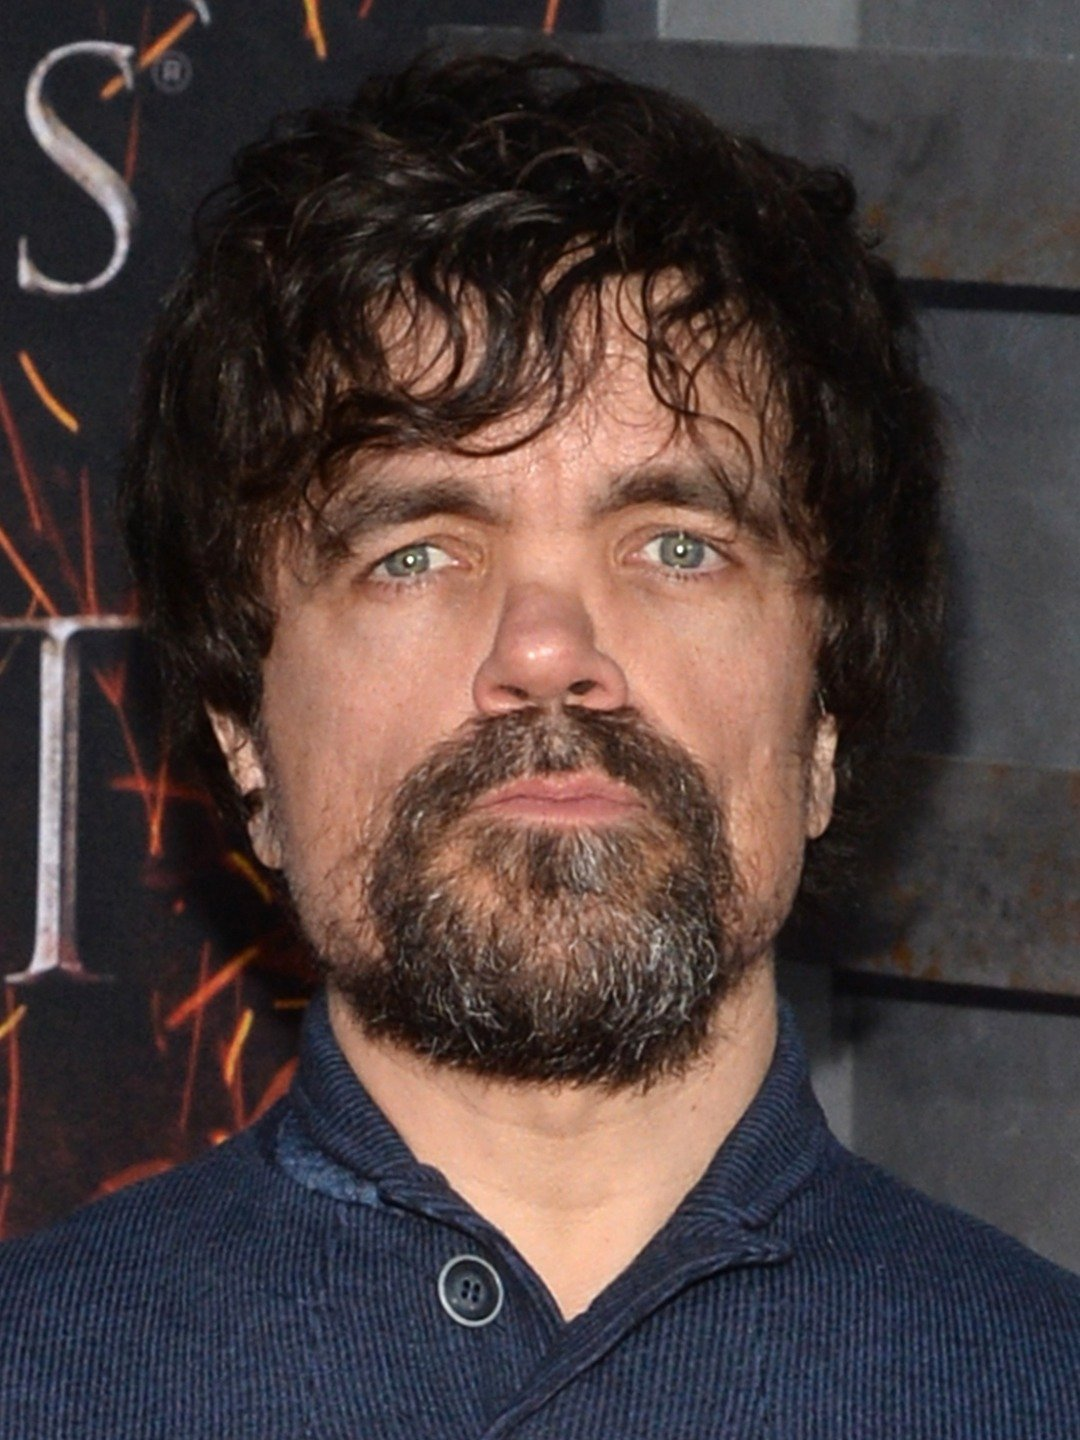 How tall is Peter Dinklage?